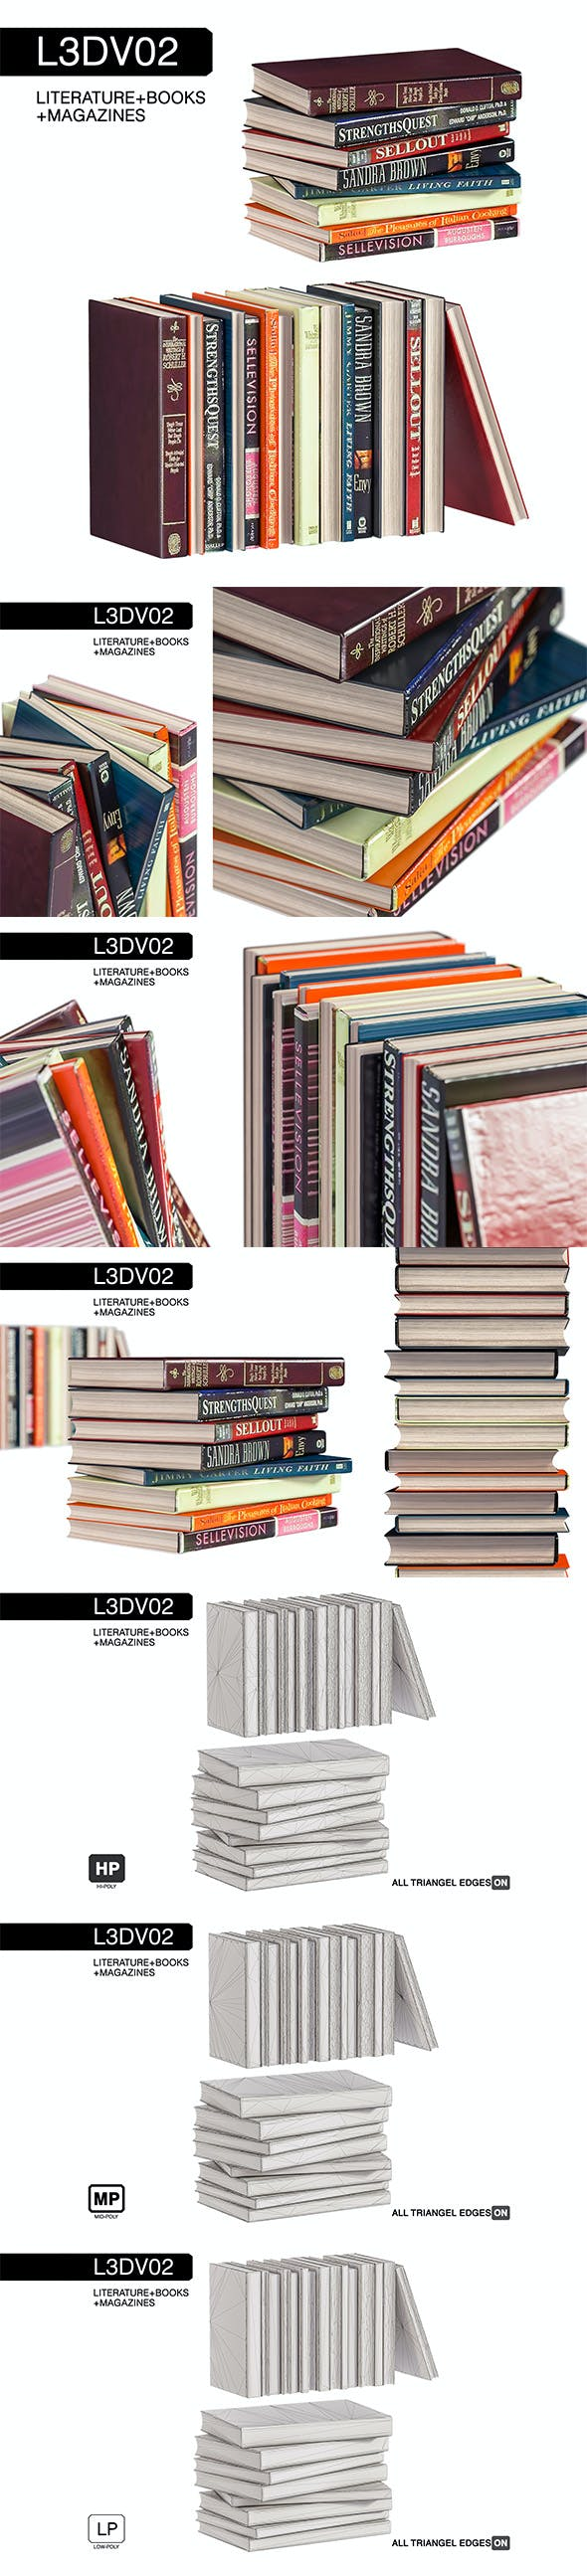 L3DV02G06 - books set with 3 polygonal levels - 3DOcean Item for Sale